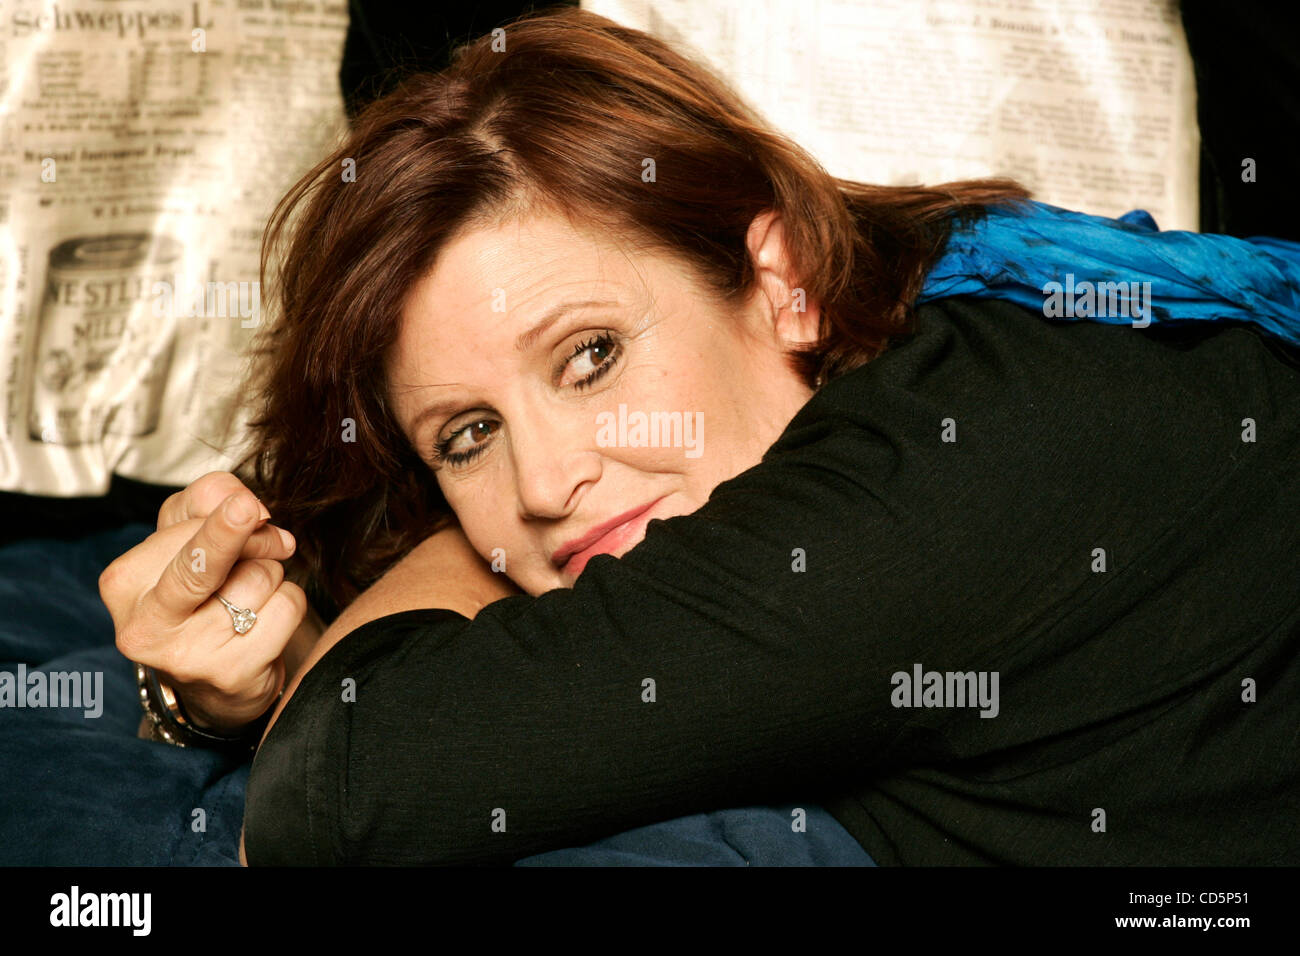 Sep 11, 2008 - Beverly Hills, California, USA - CARRIE FISHER at her home in Beverly Hills. Fisher stars in 'Wishful - Stock Image